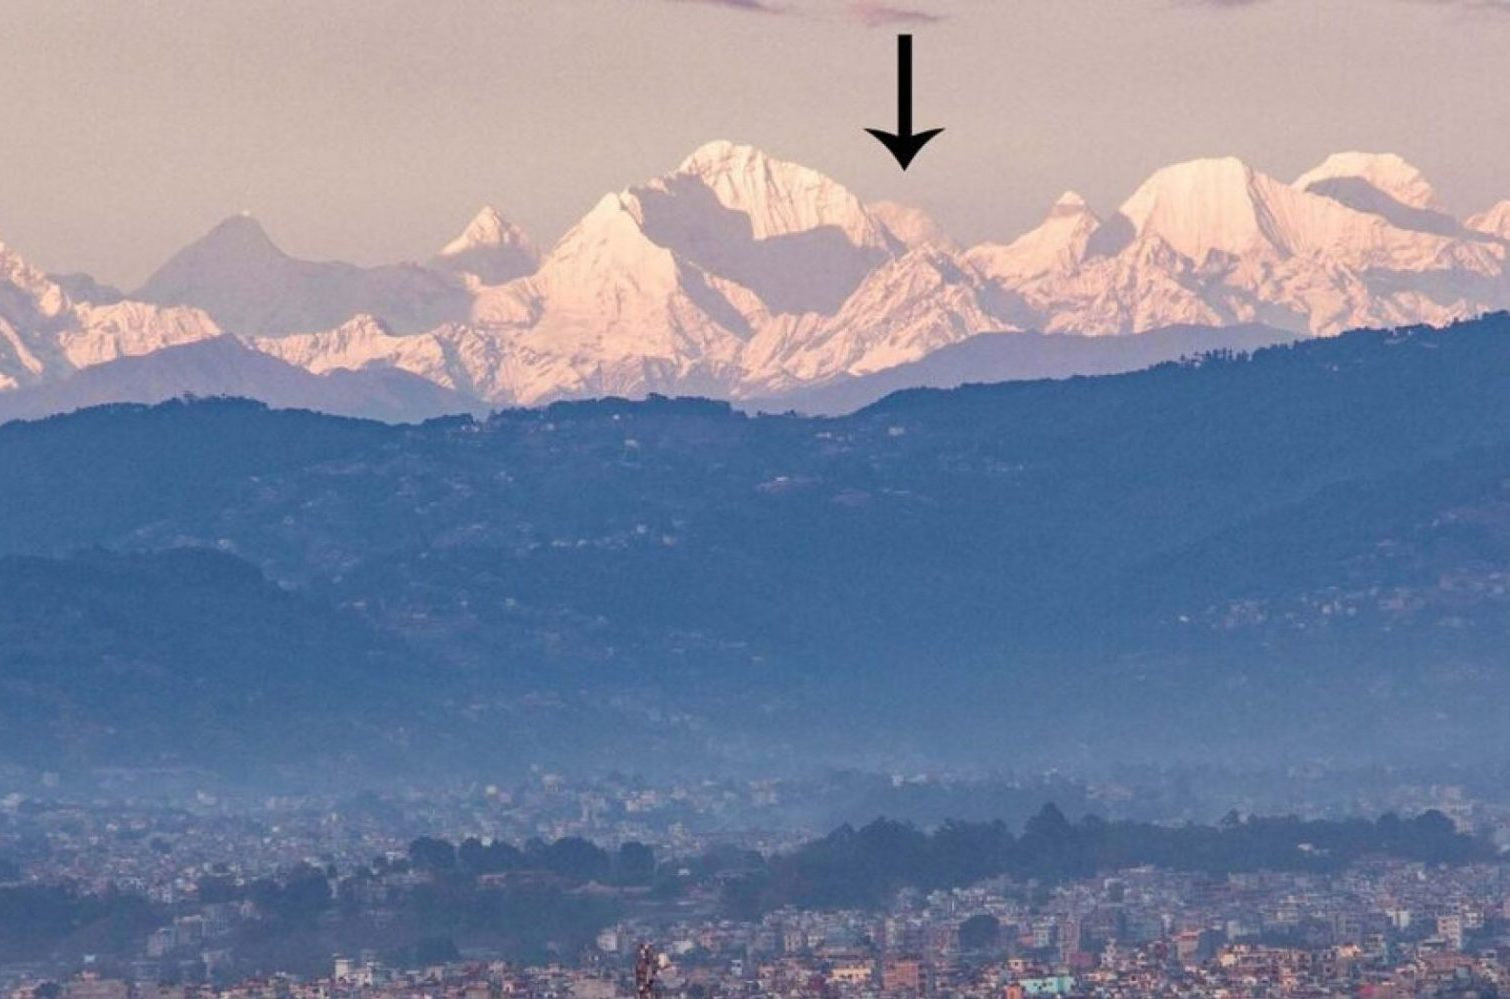 Mount Everest is now visible from Nepal capital city for the first time in living memory